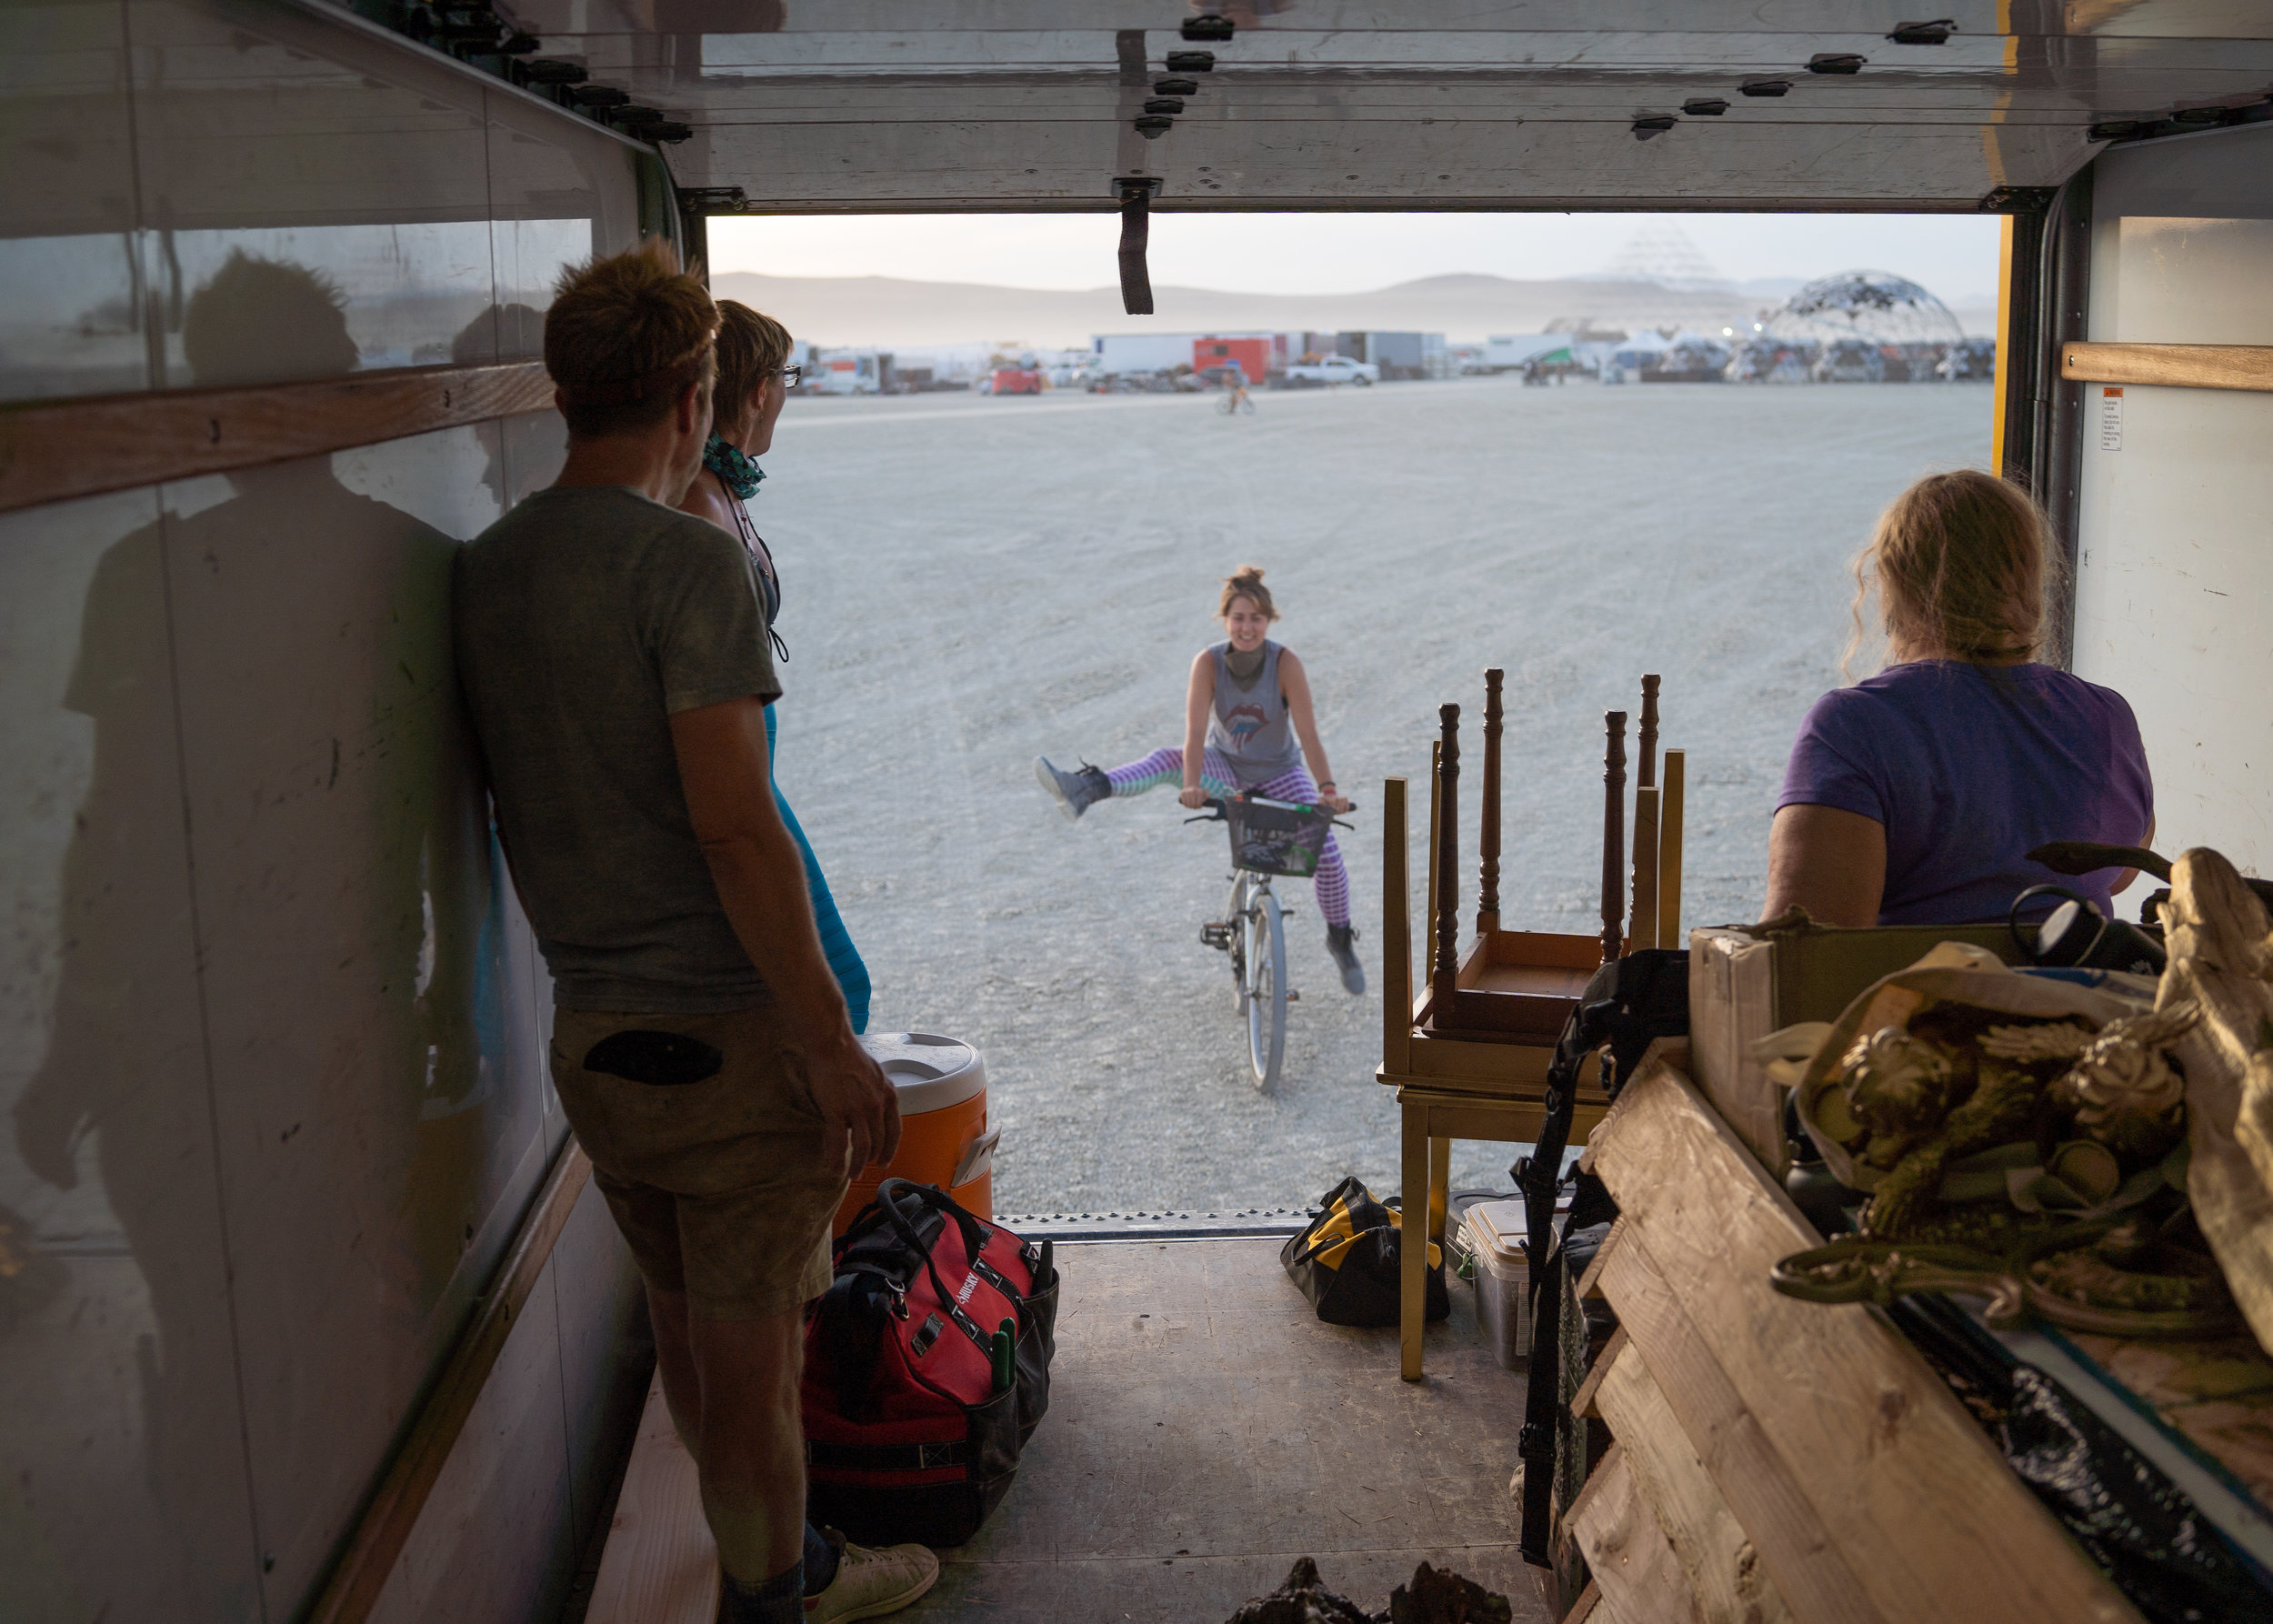 Upon arrival to our camp we were immediately jumping in on the work camp set up. Before we even had time to put together our own tent we were jumping into the work truck and headed out onto the playa for the first night of build.